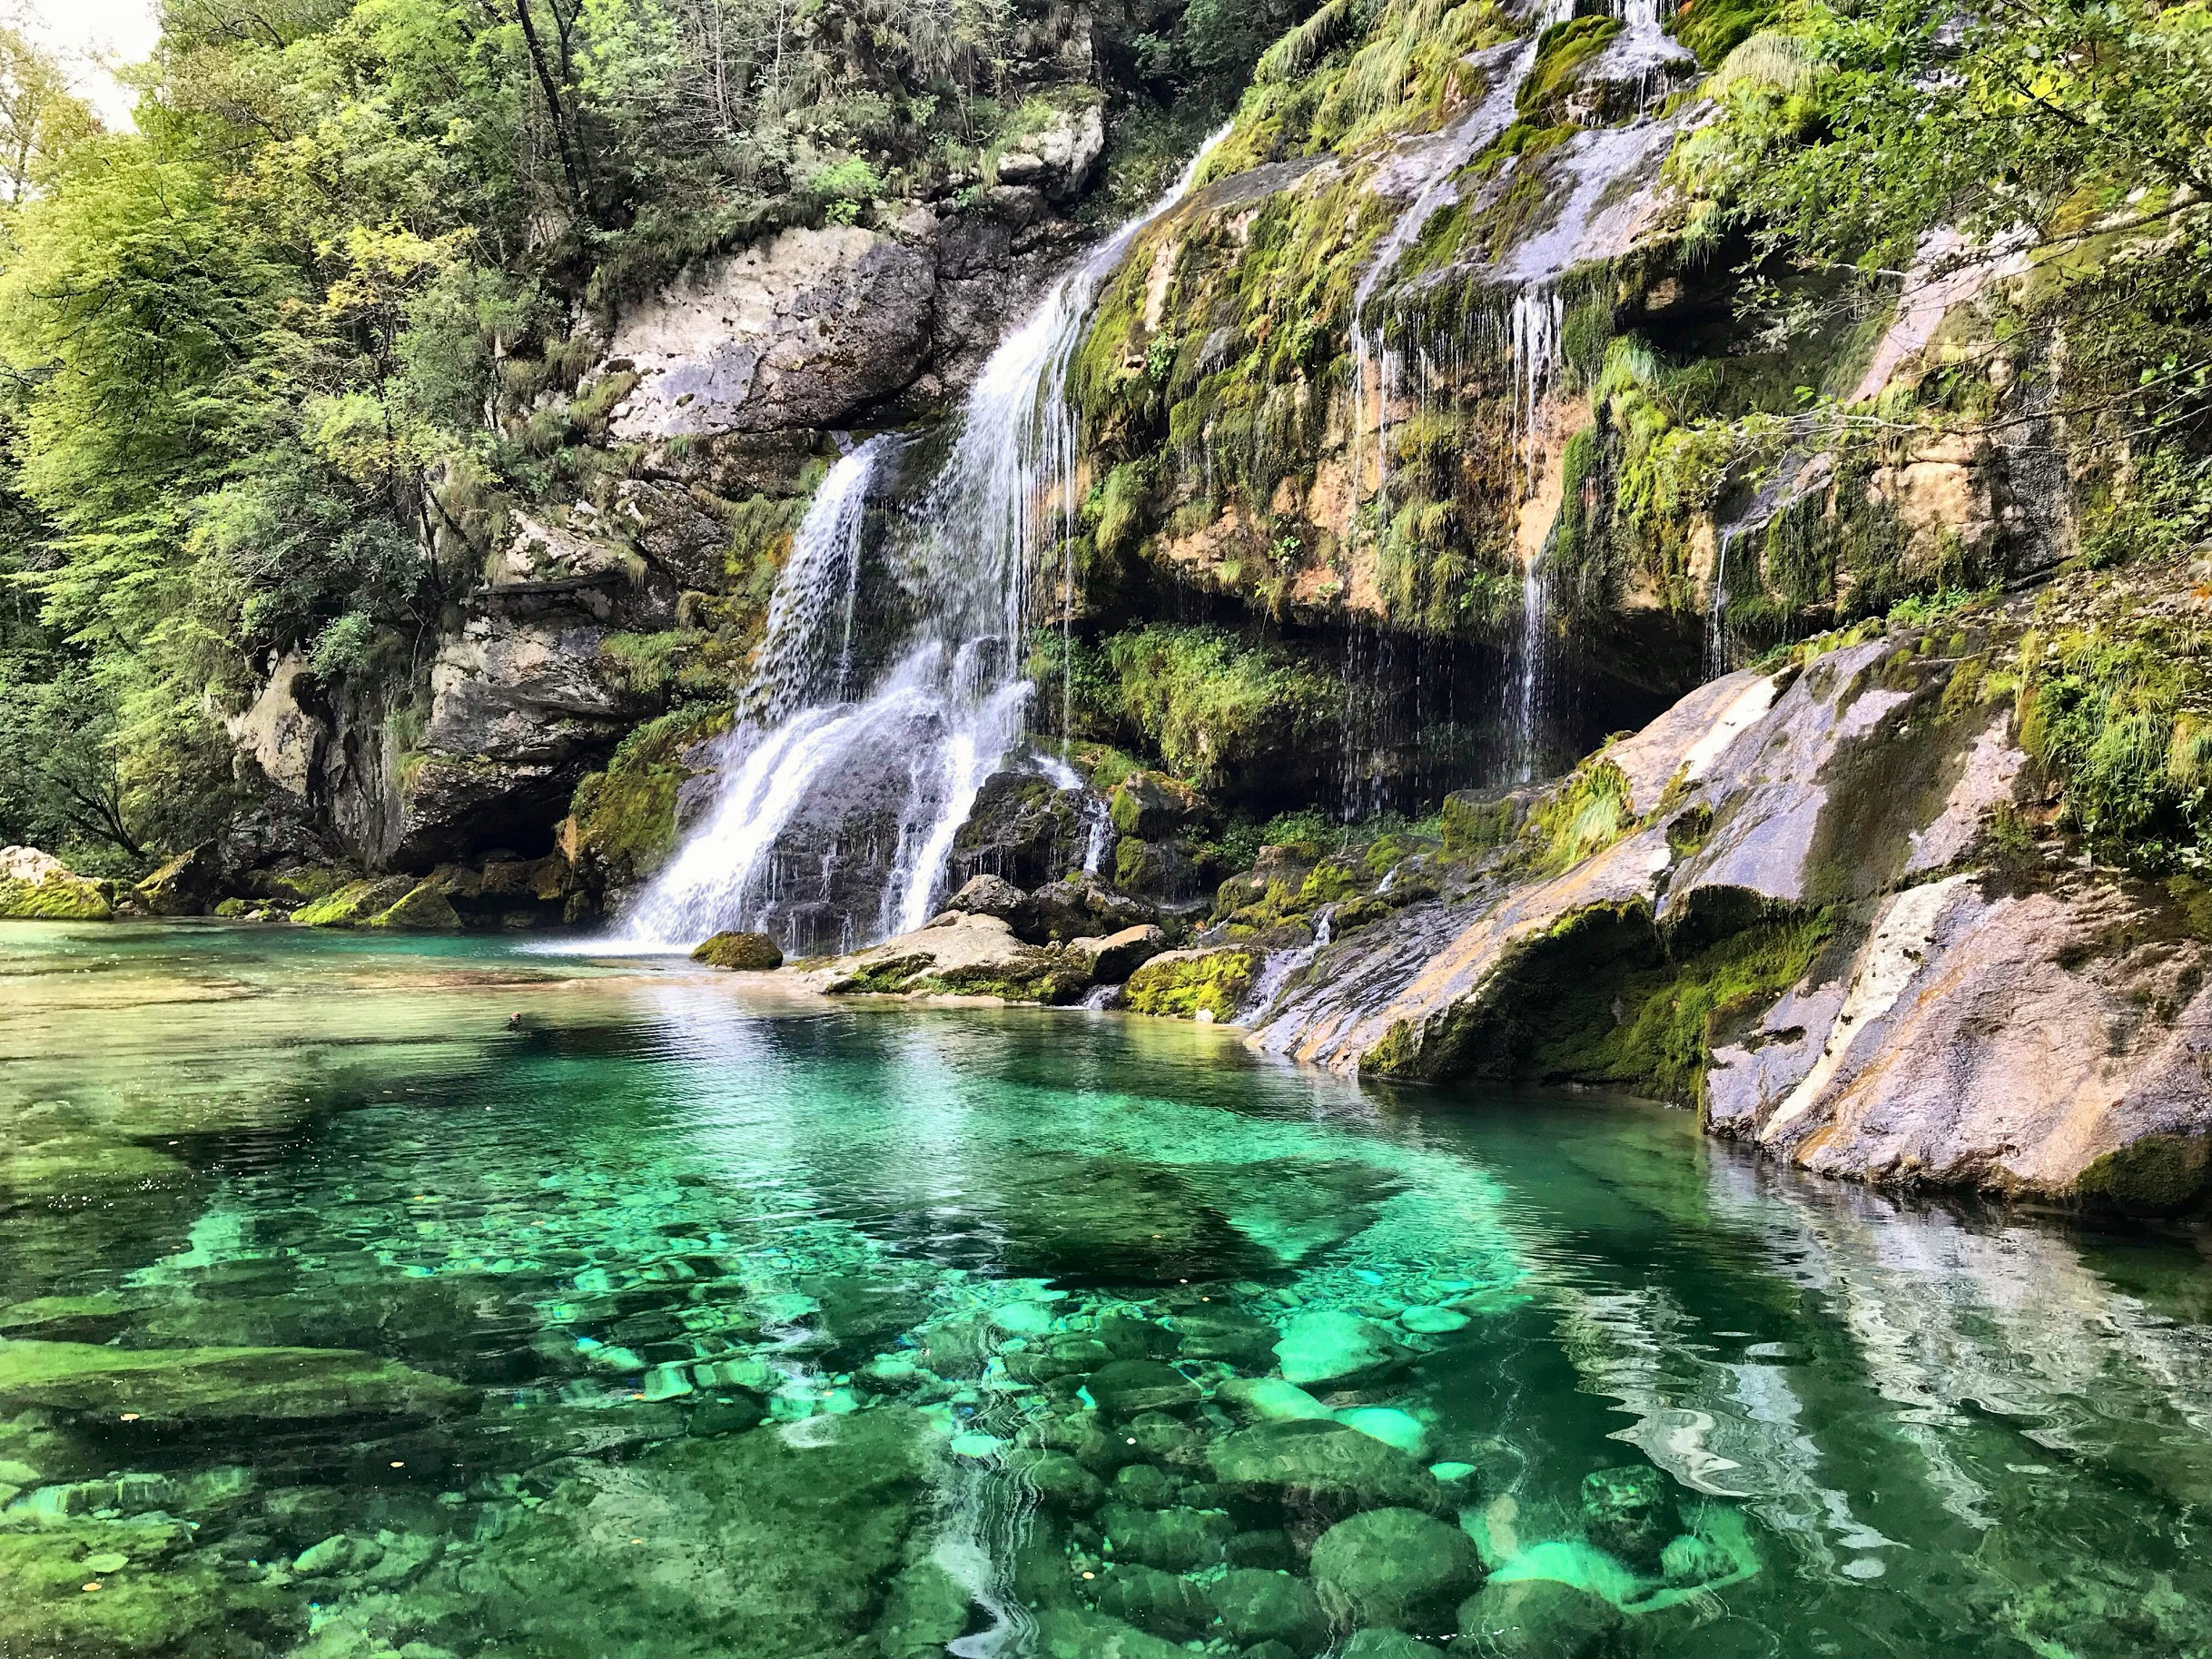 Another turquoise hidden gem in Slovenia